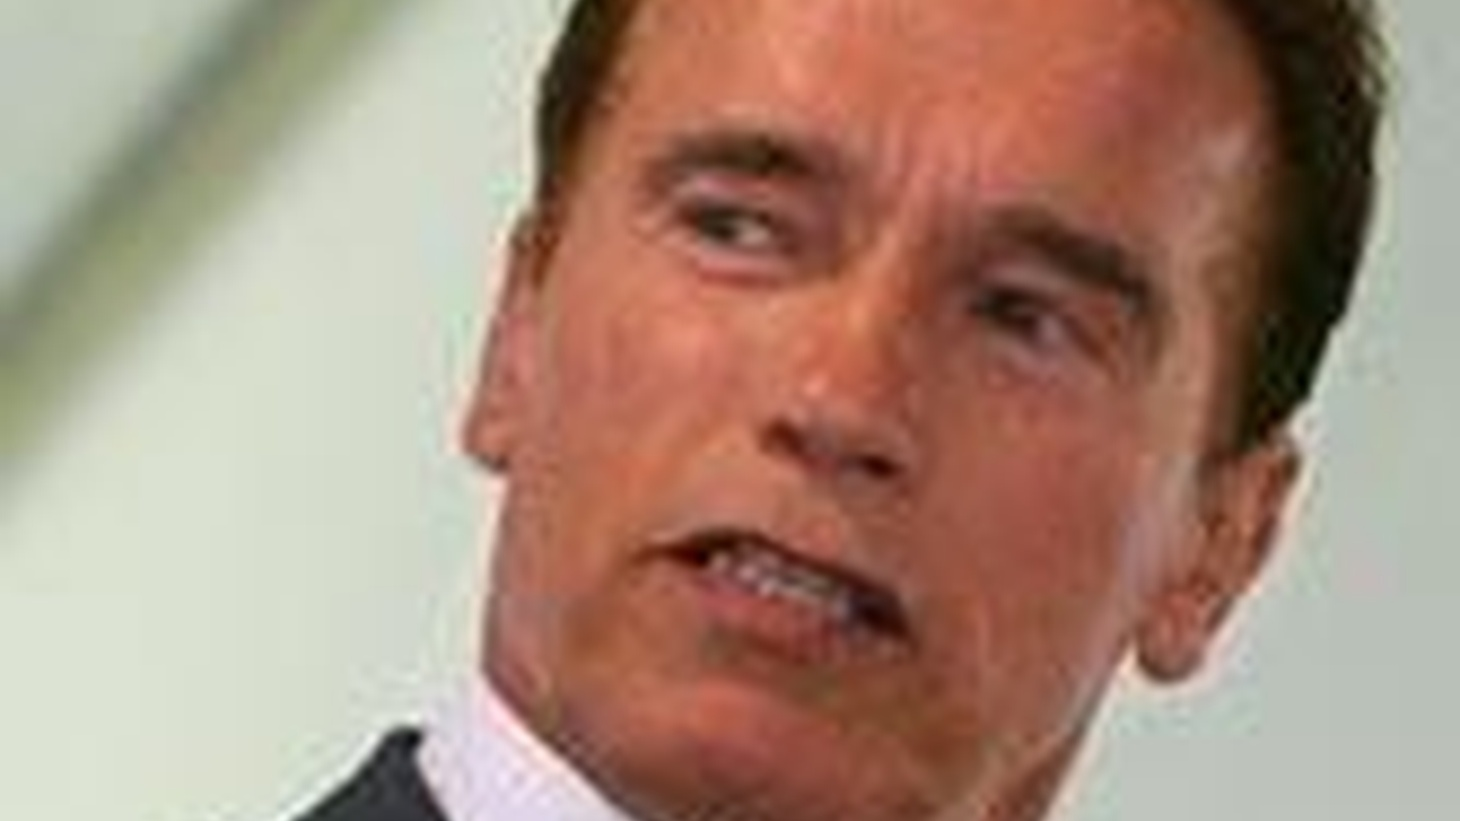 """Arnold Schwarzenegger told a UN conference today that California is on the """"cutting edge"""" against global warming. But Schwarzenegger himself gets mixed reviews, from traditional environmentalists and from Republicans who want to take the issue back from the Democrats. On Reporter's Notebook, Pasadena's All Saints Episcopal Church and the IRS."""